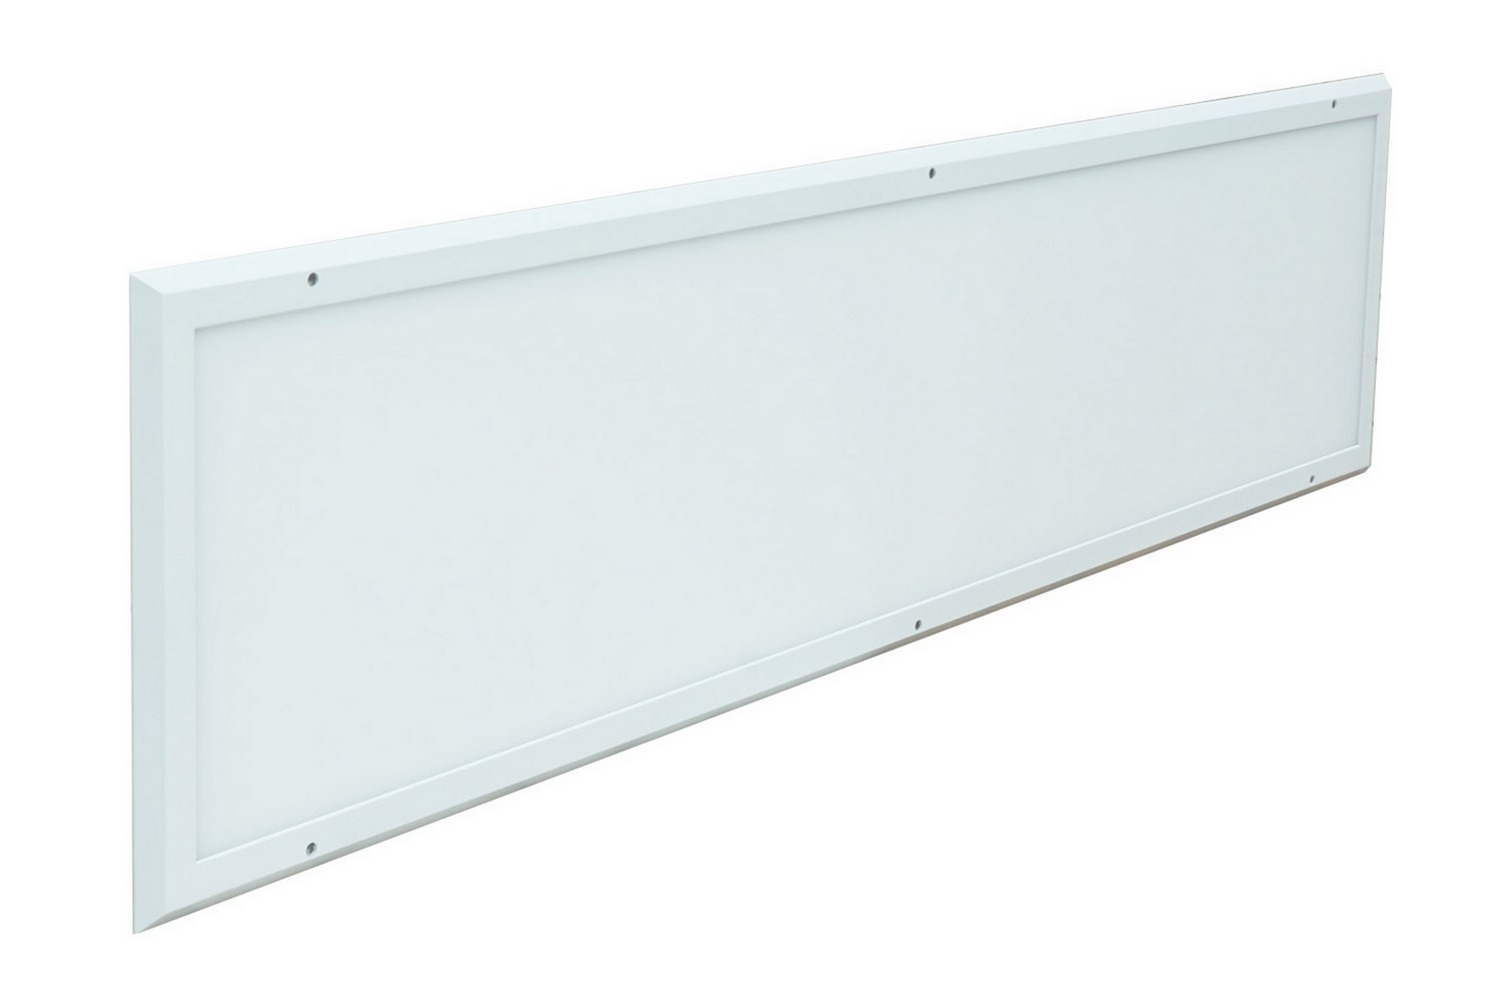 LED panel light 2x2 60x60 600x600 UL FCC led flat panel lamp ip44 4000K-6000K dimmable